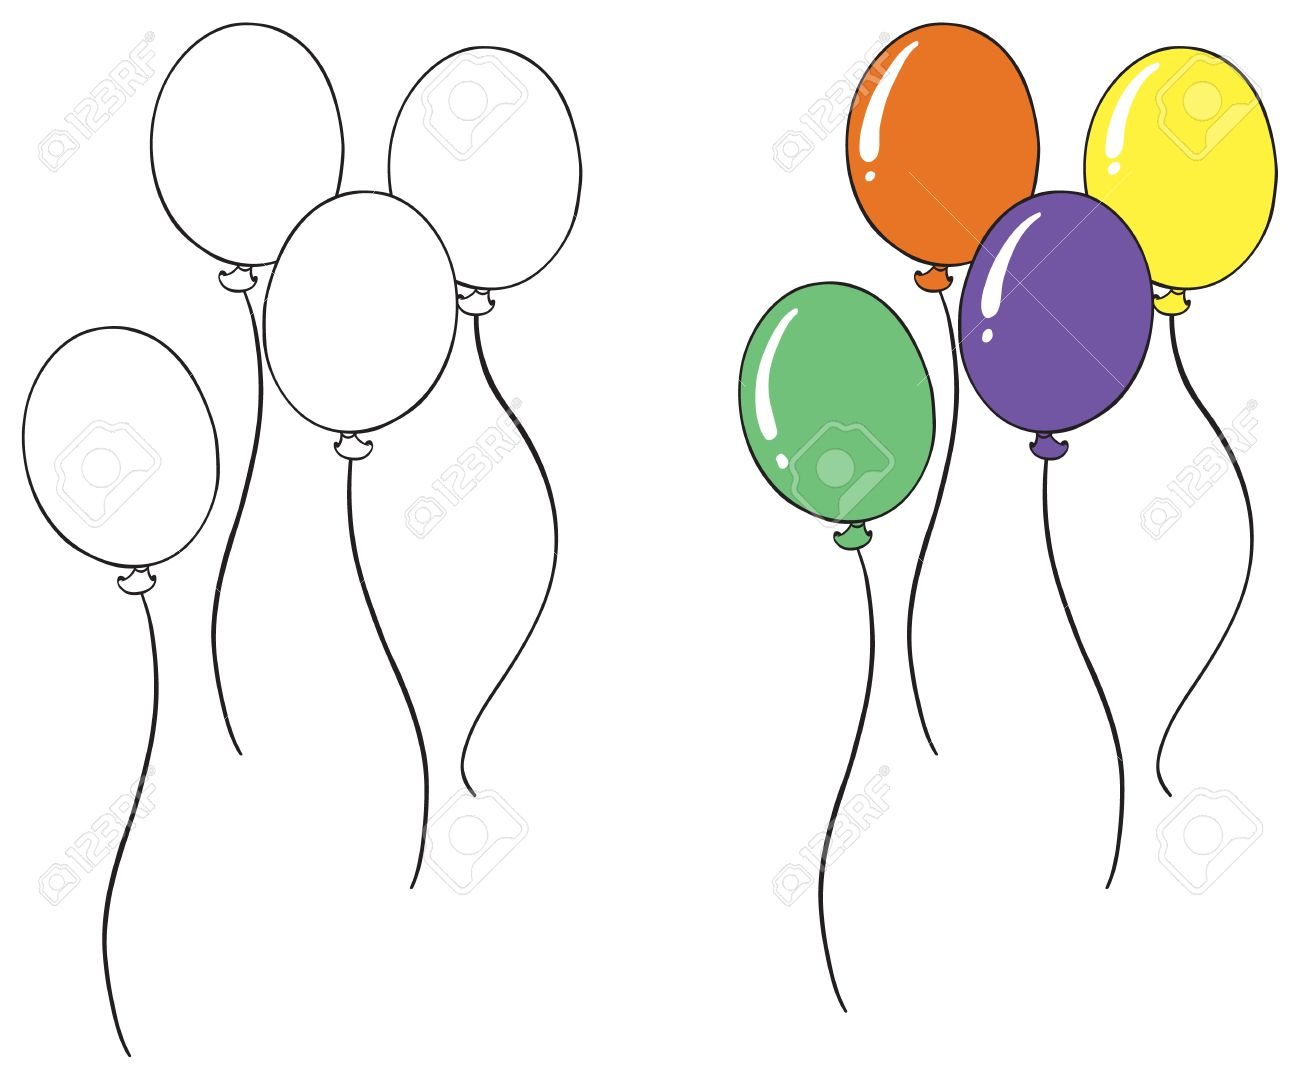 Illustration Of A Balloon Sketch On A White Background Royalty